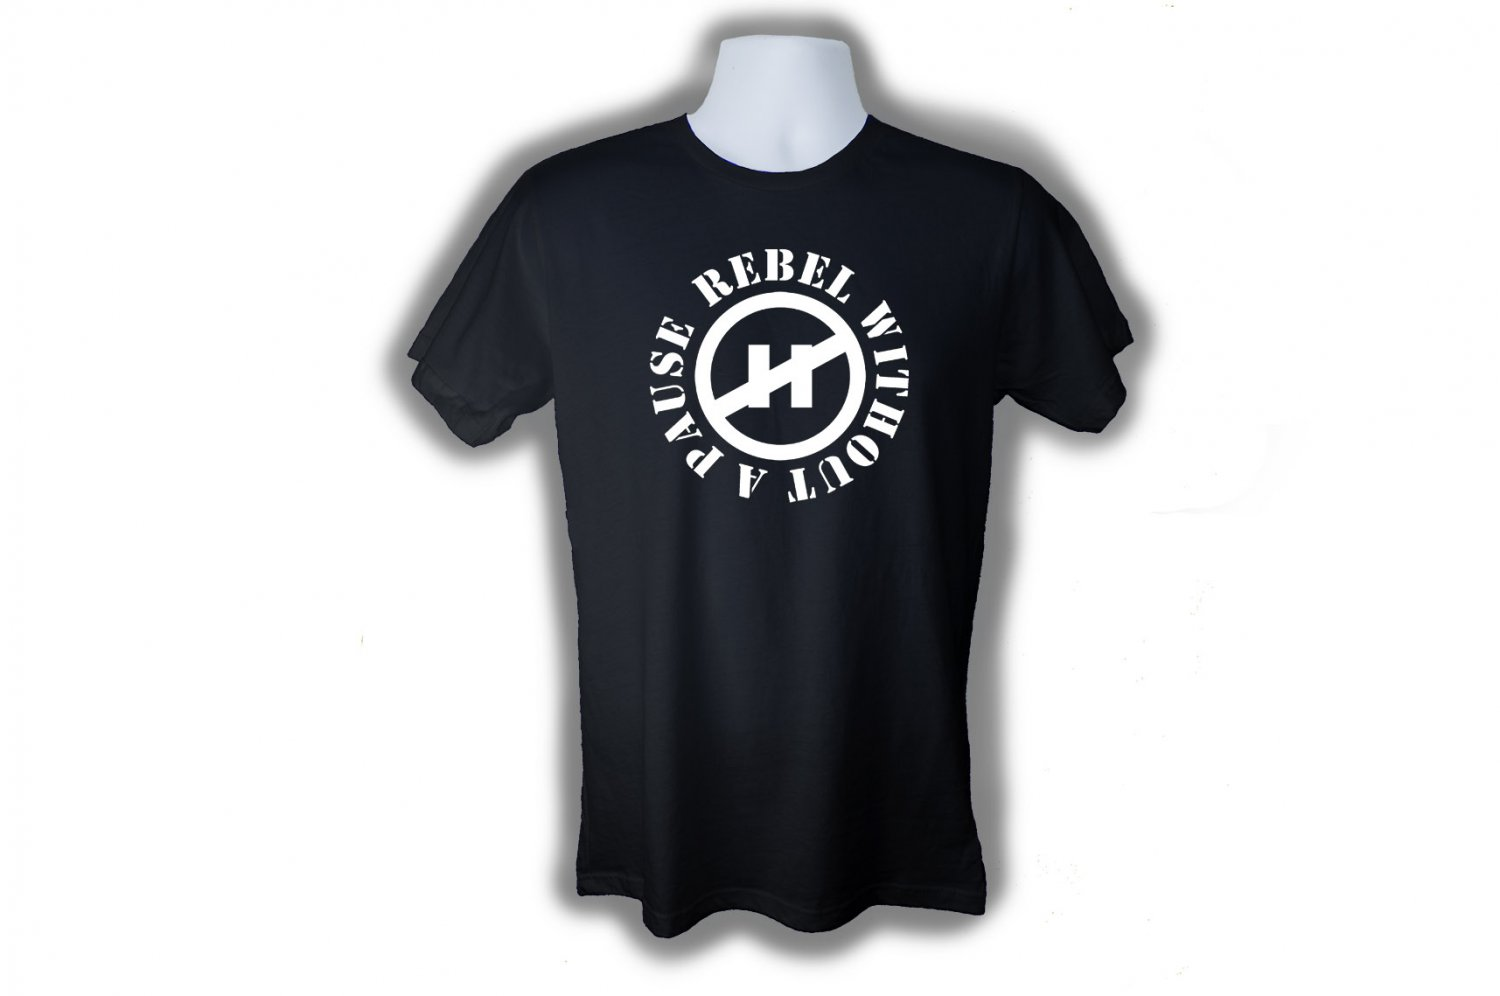 REBEL WITHOUT A PAUSE T-SHIRT (L)